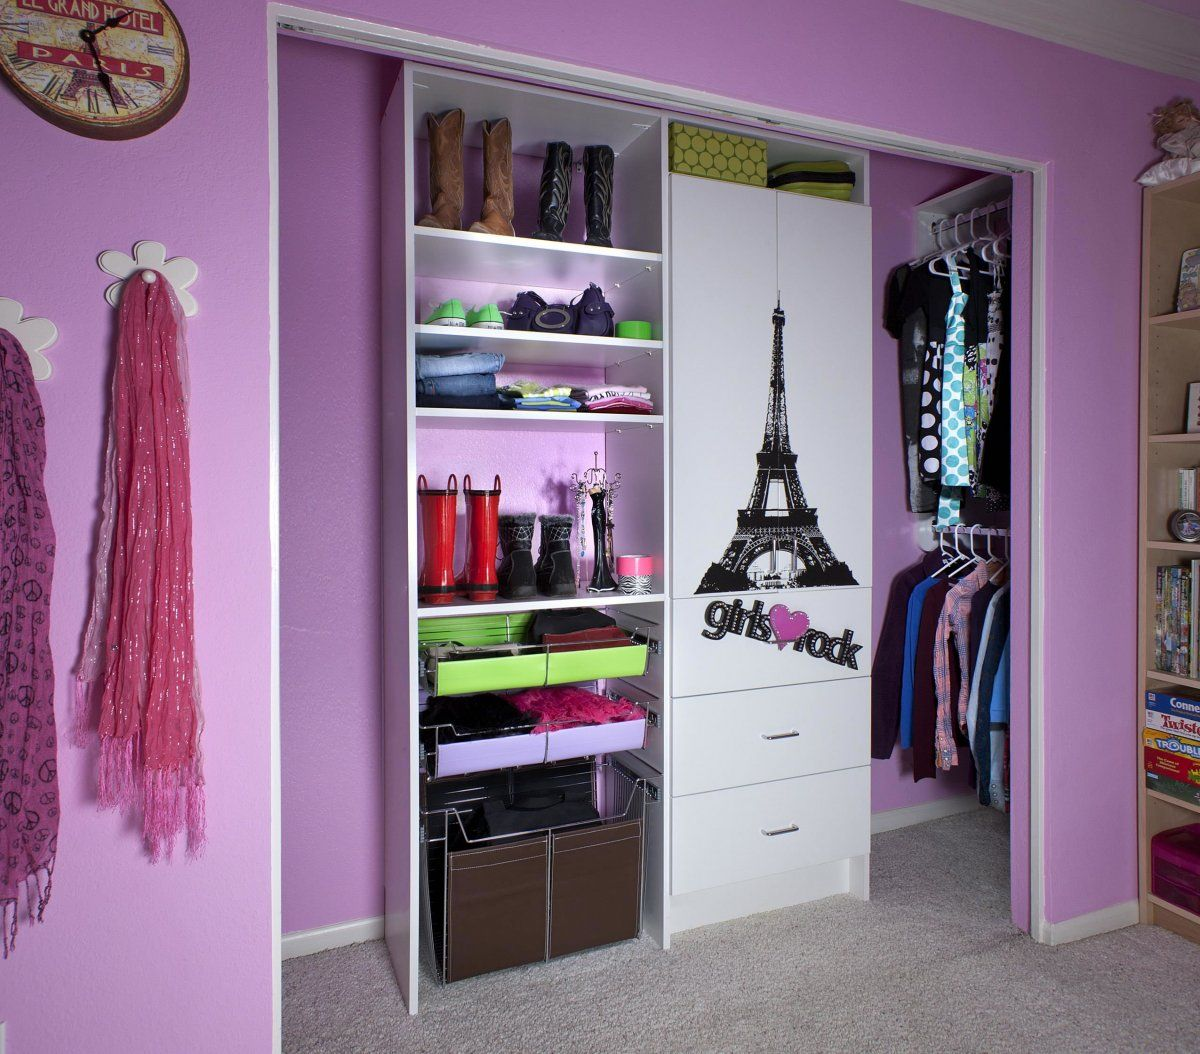 Bedrooms With Closets Ideas Painting 13 diy closet organizers for tidy bedrooms | bedrooms, girls room